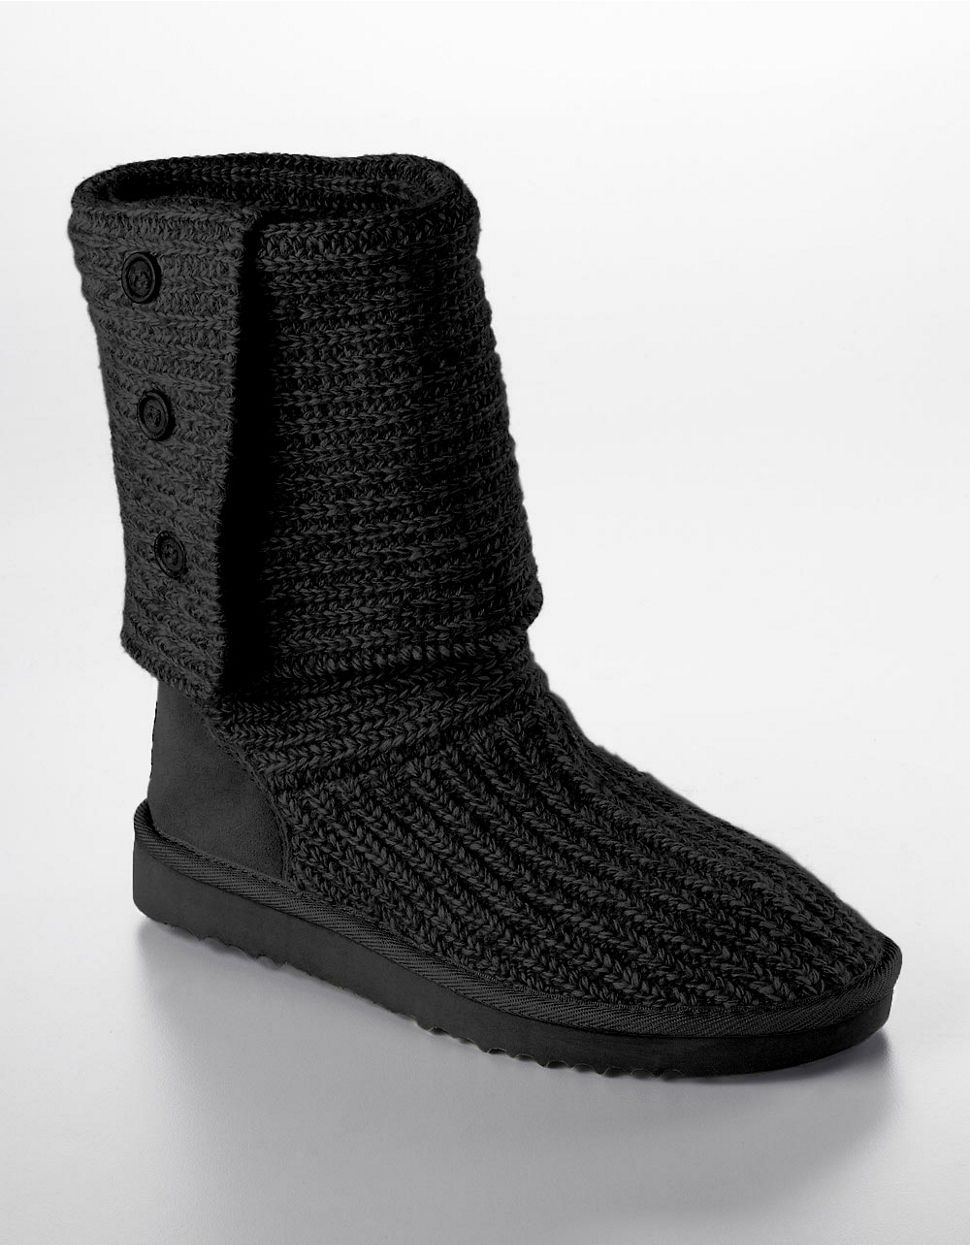 Ugg Australia Ladies Cardy Knit Flat Boots In Black Lyst